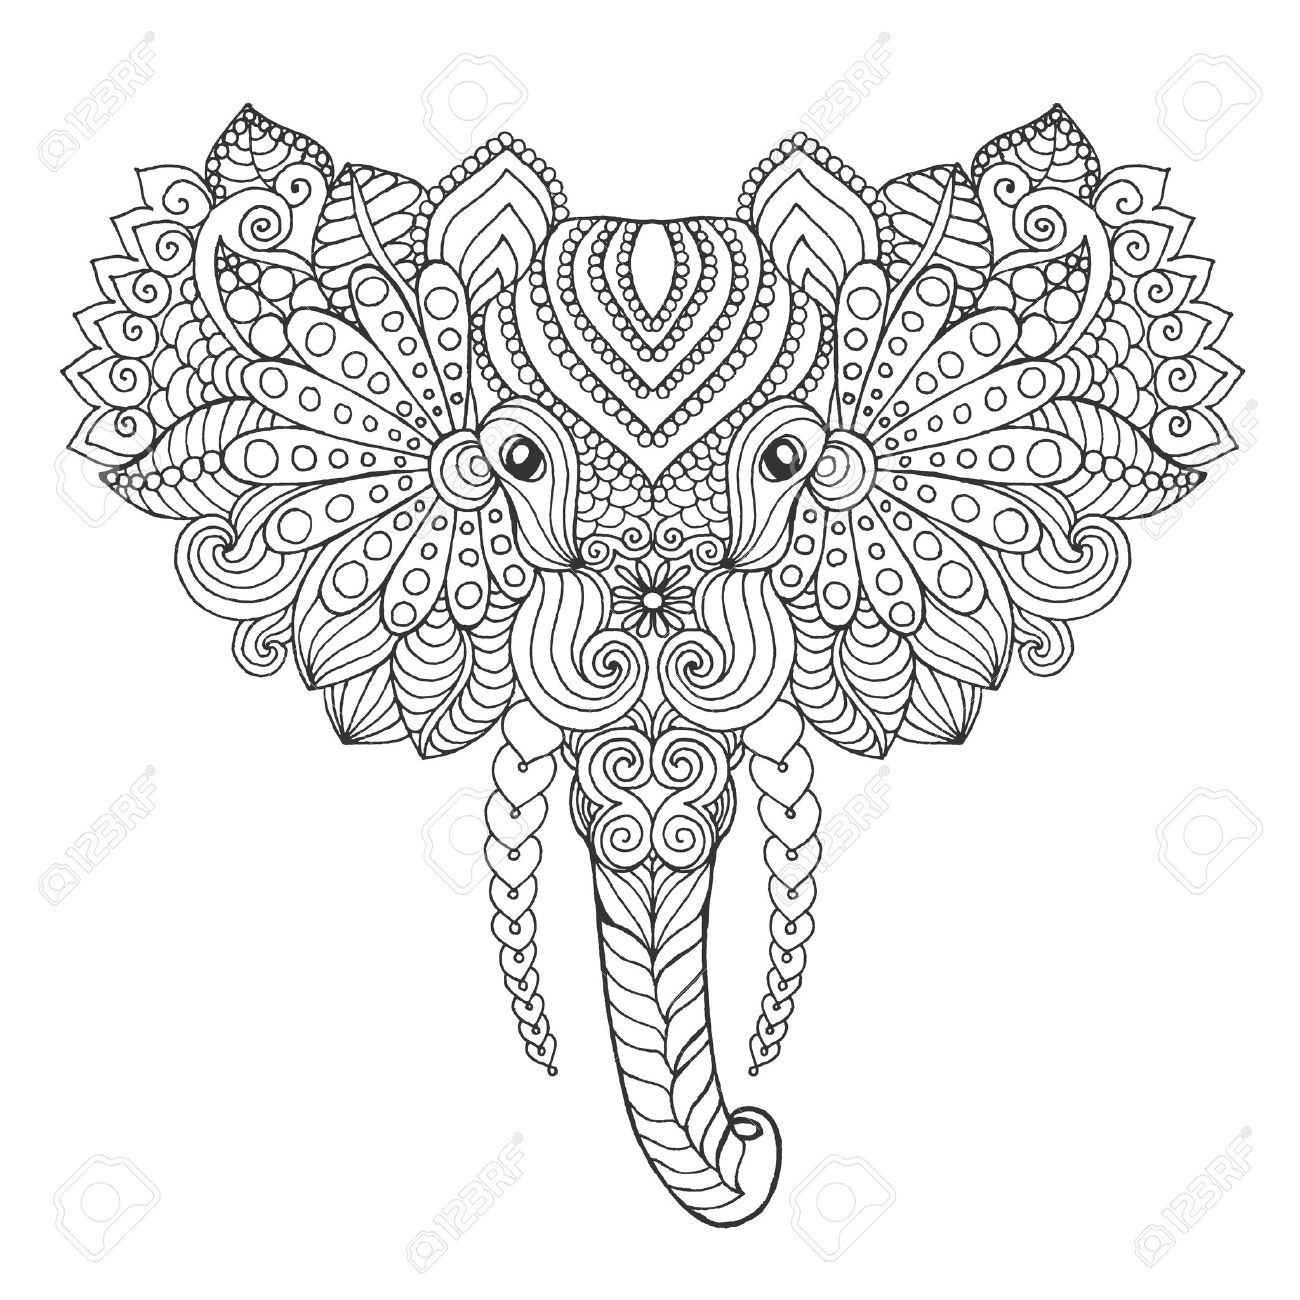 Elephant Head. Adult Antistress Coloring Page. Black White Hand ...